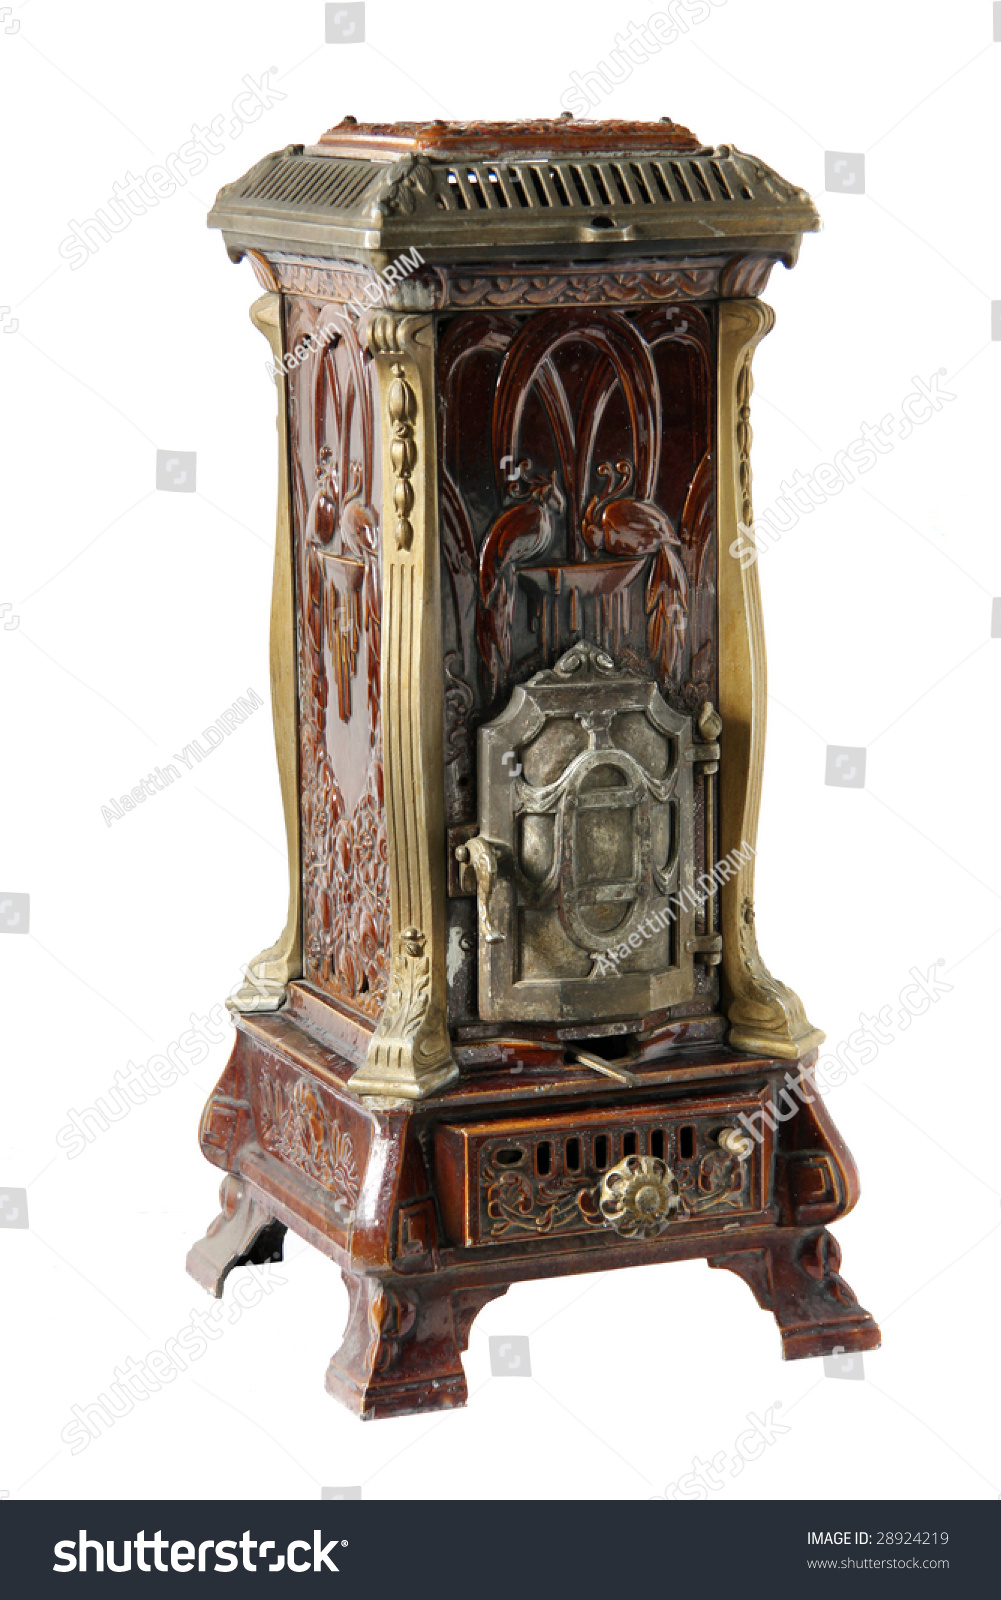 Antique Woodburning Stove Preview. Save to a lightbox - Antique Woodburning Stove Stock Photo 28924219 : Shutterstock